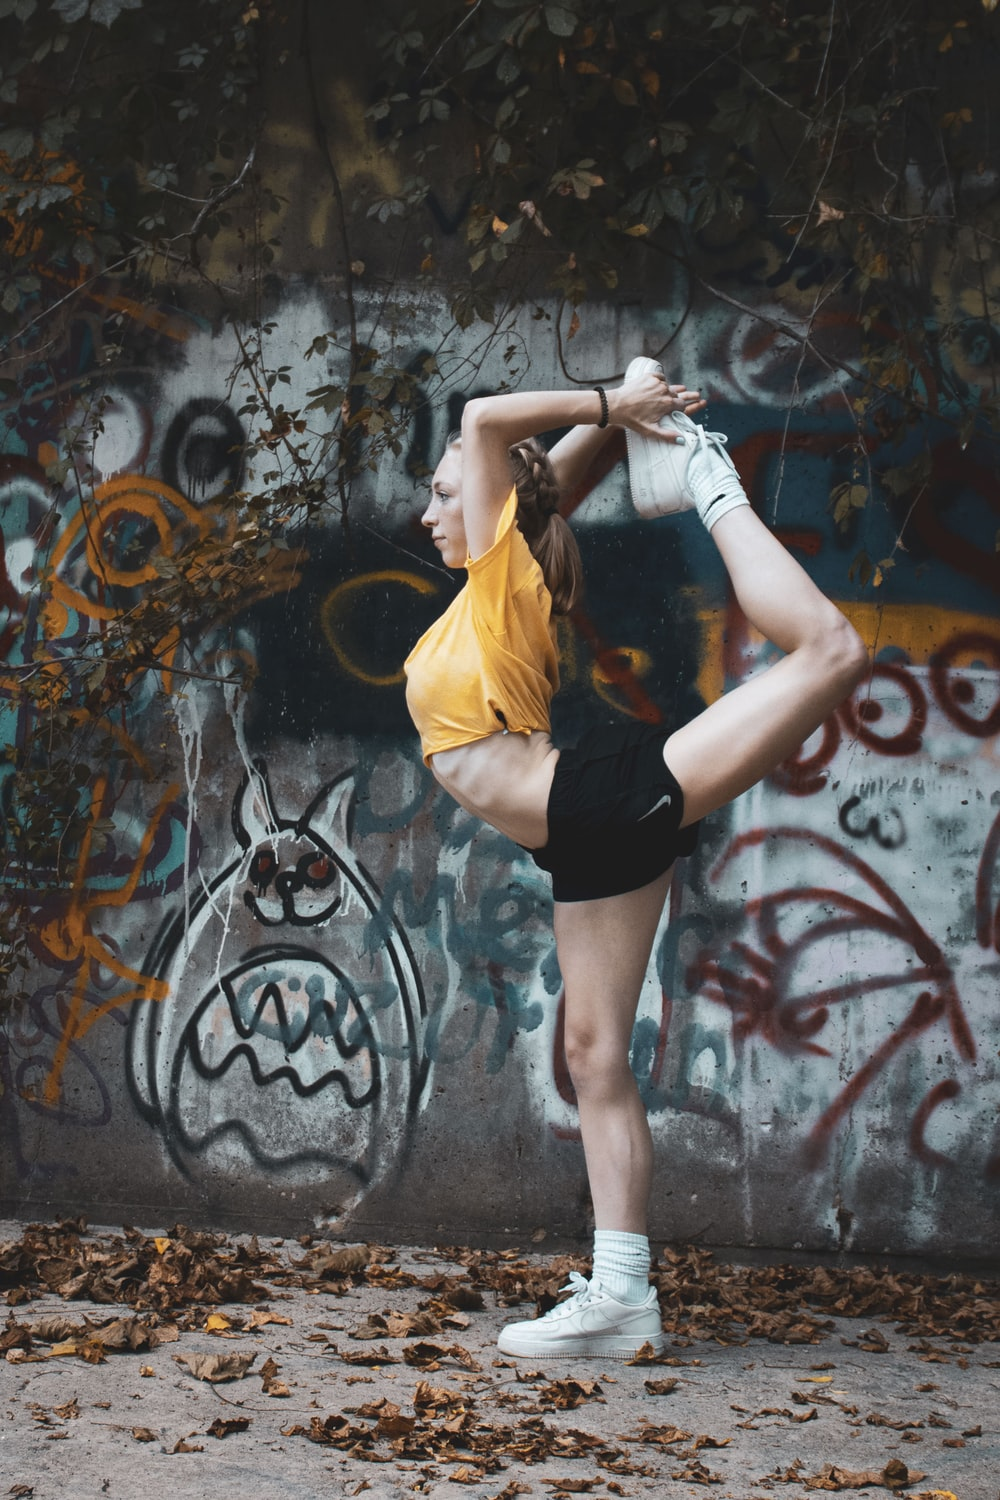 woman in yellow shirt and black shorts standing near wall with graffiti